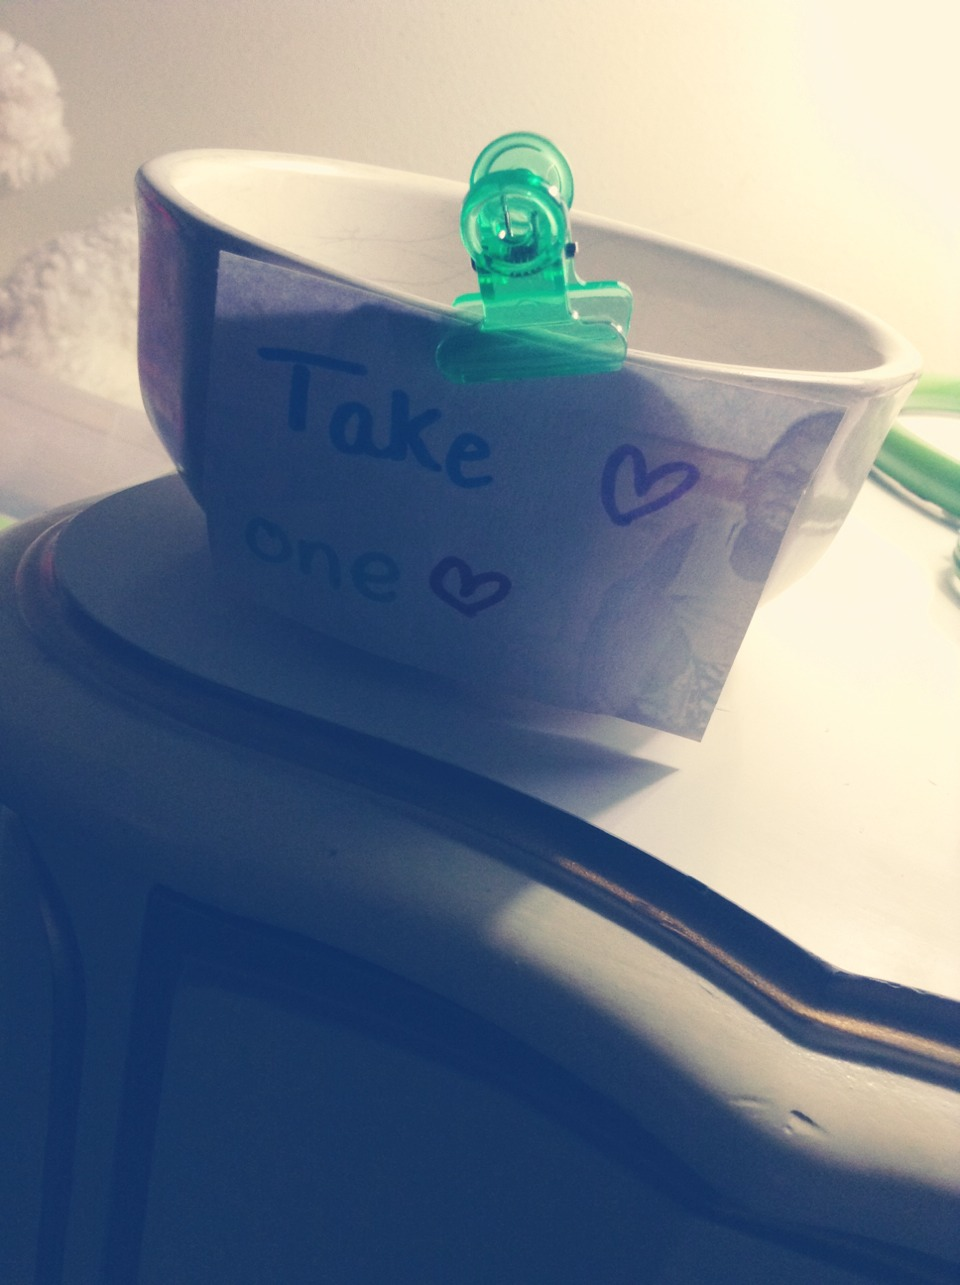 Use a bowl and some scrap paper to make a take one ♡ bowl. You can tape it or clip it on. This can hold gum candy or whatever you want